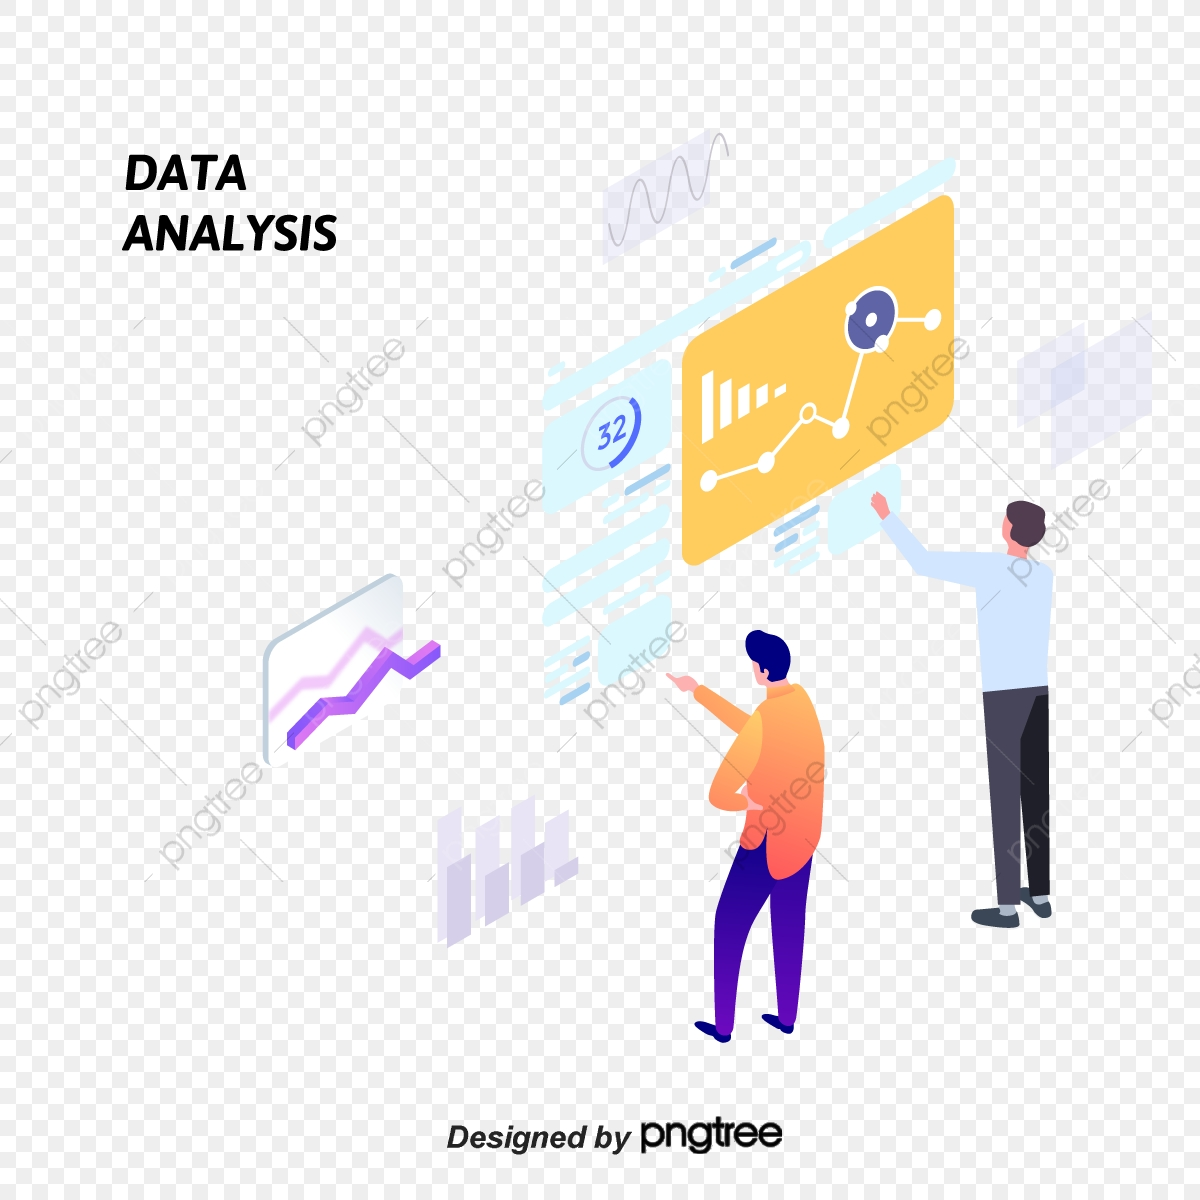 Business Data Analysis And Communication Art, Ppt, The Ppt